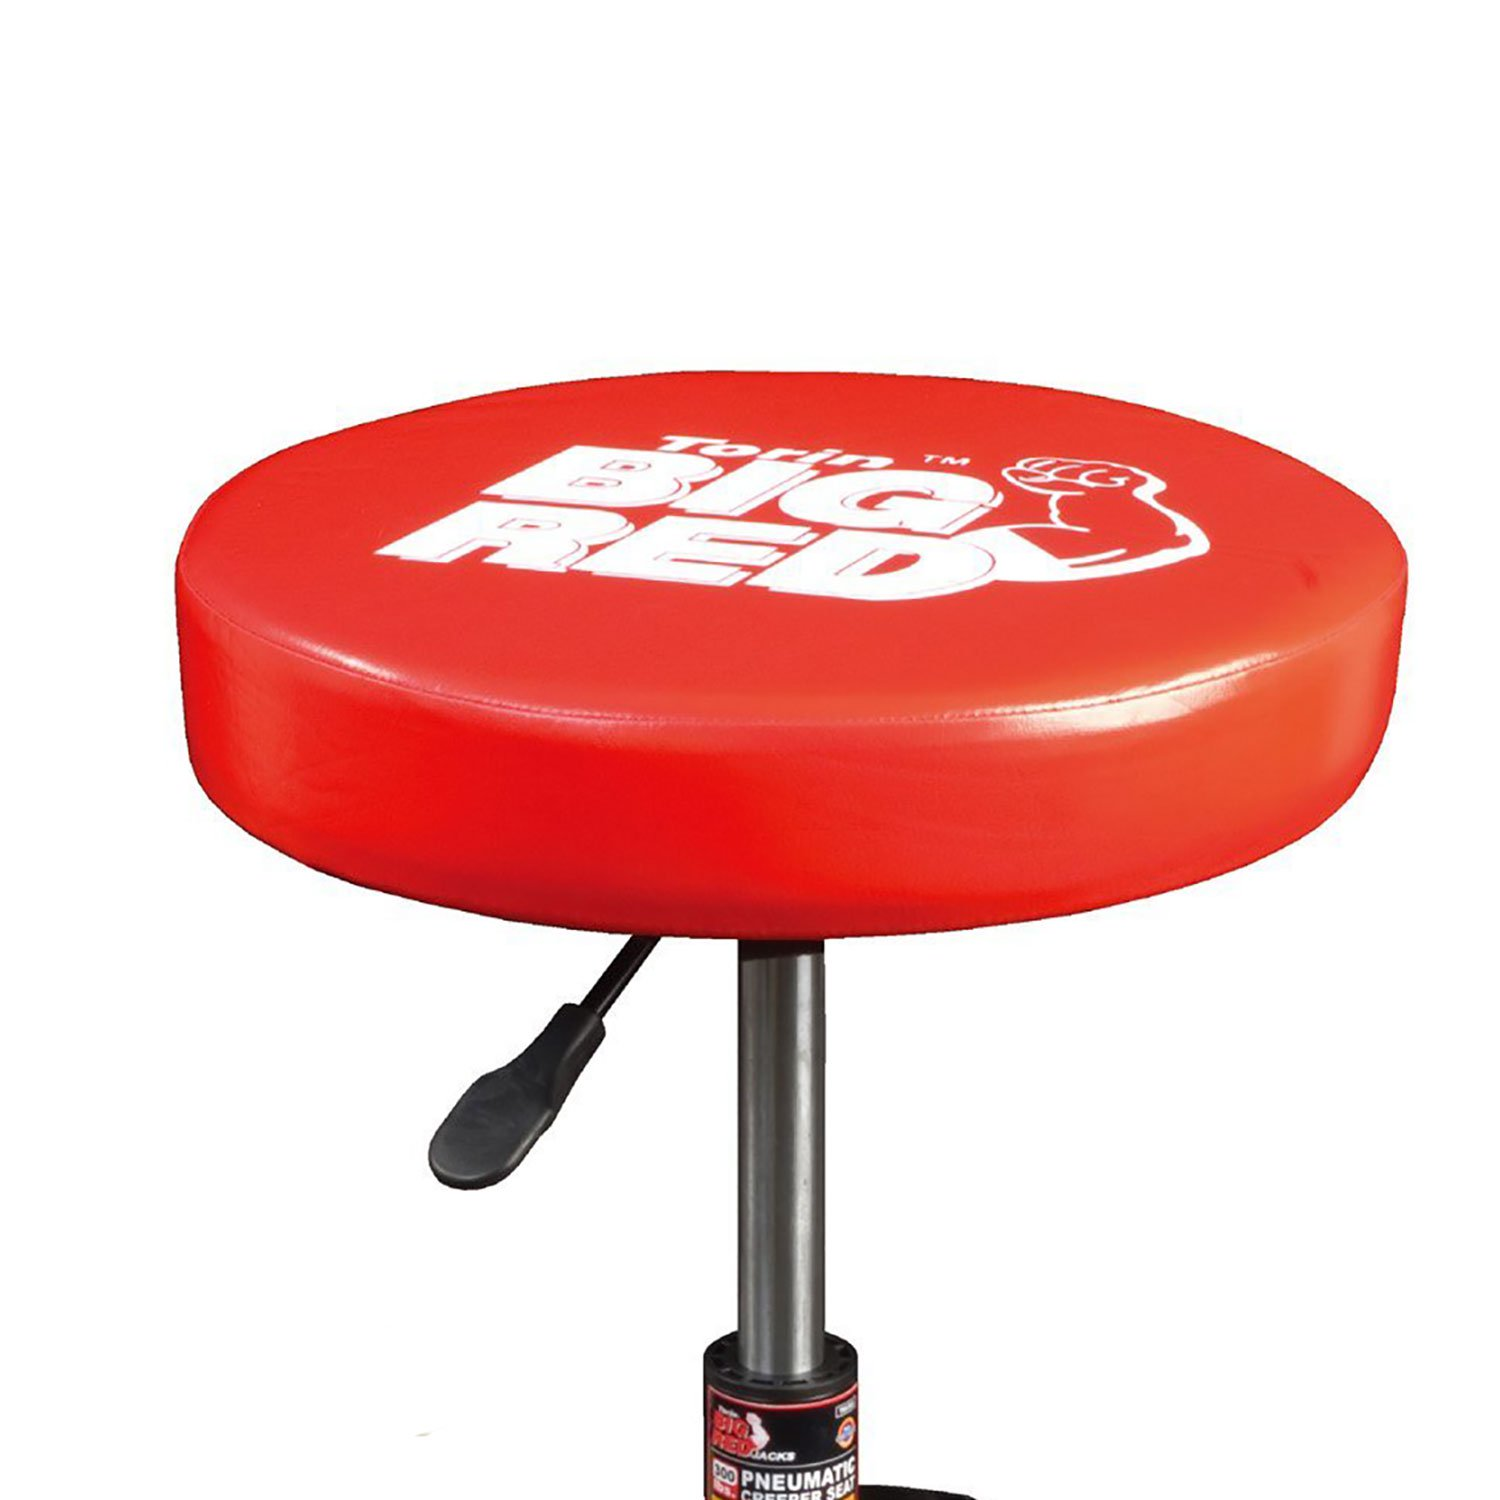 Torin Steel Rolling Padded Vinyl Creeper Mechanic Garage Workshop Workbench Stool with Integrated Tool Tray